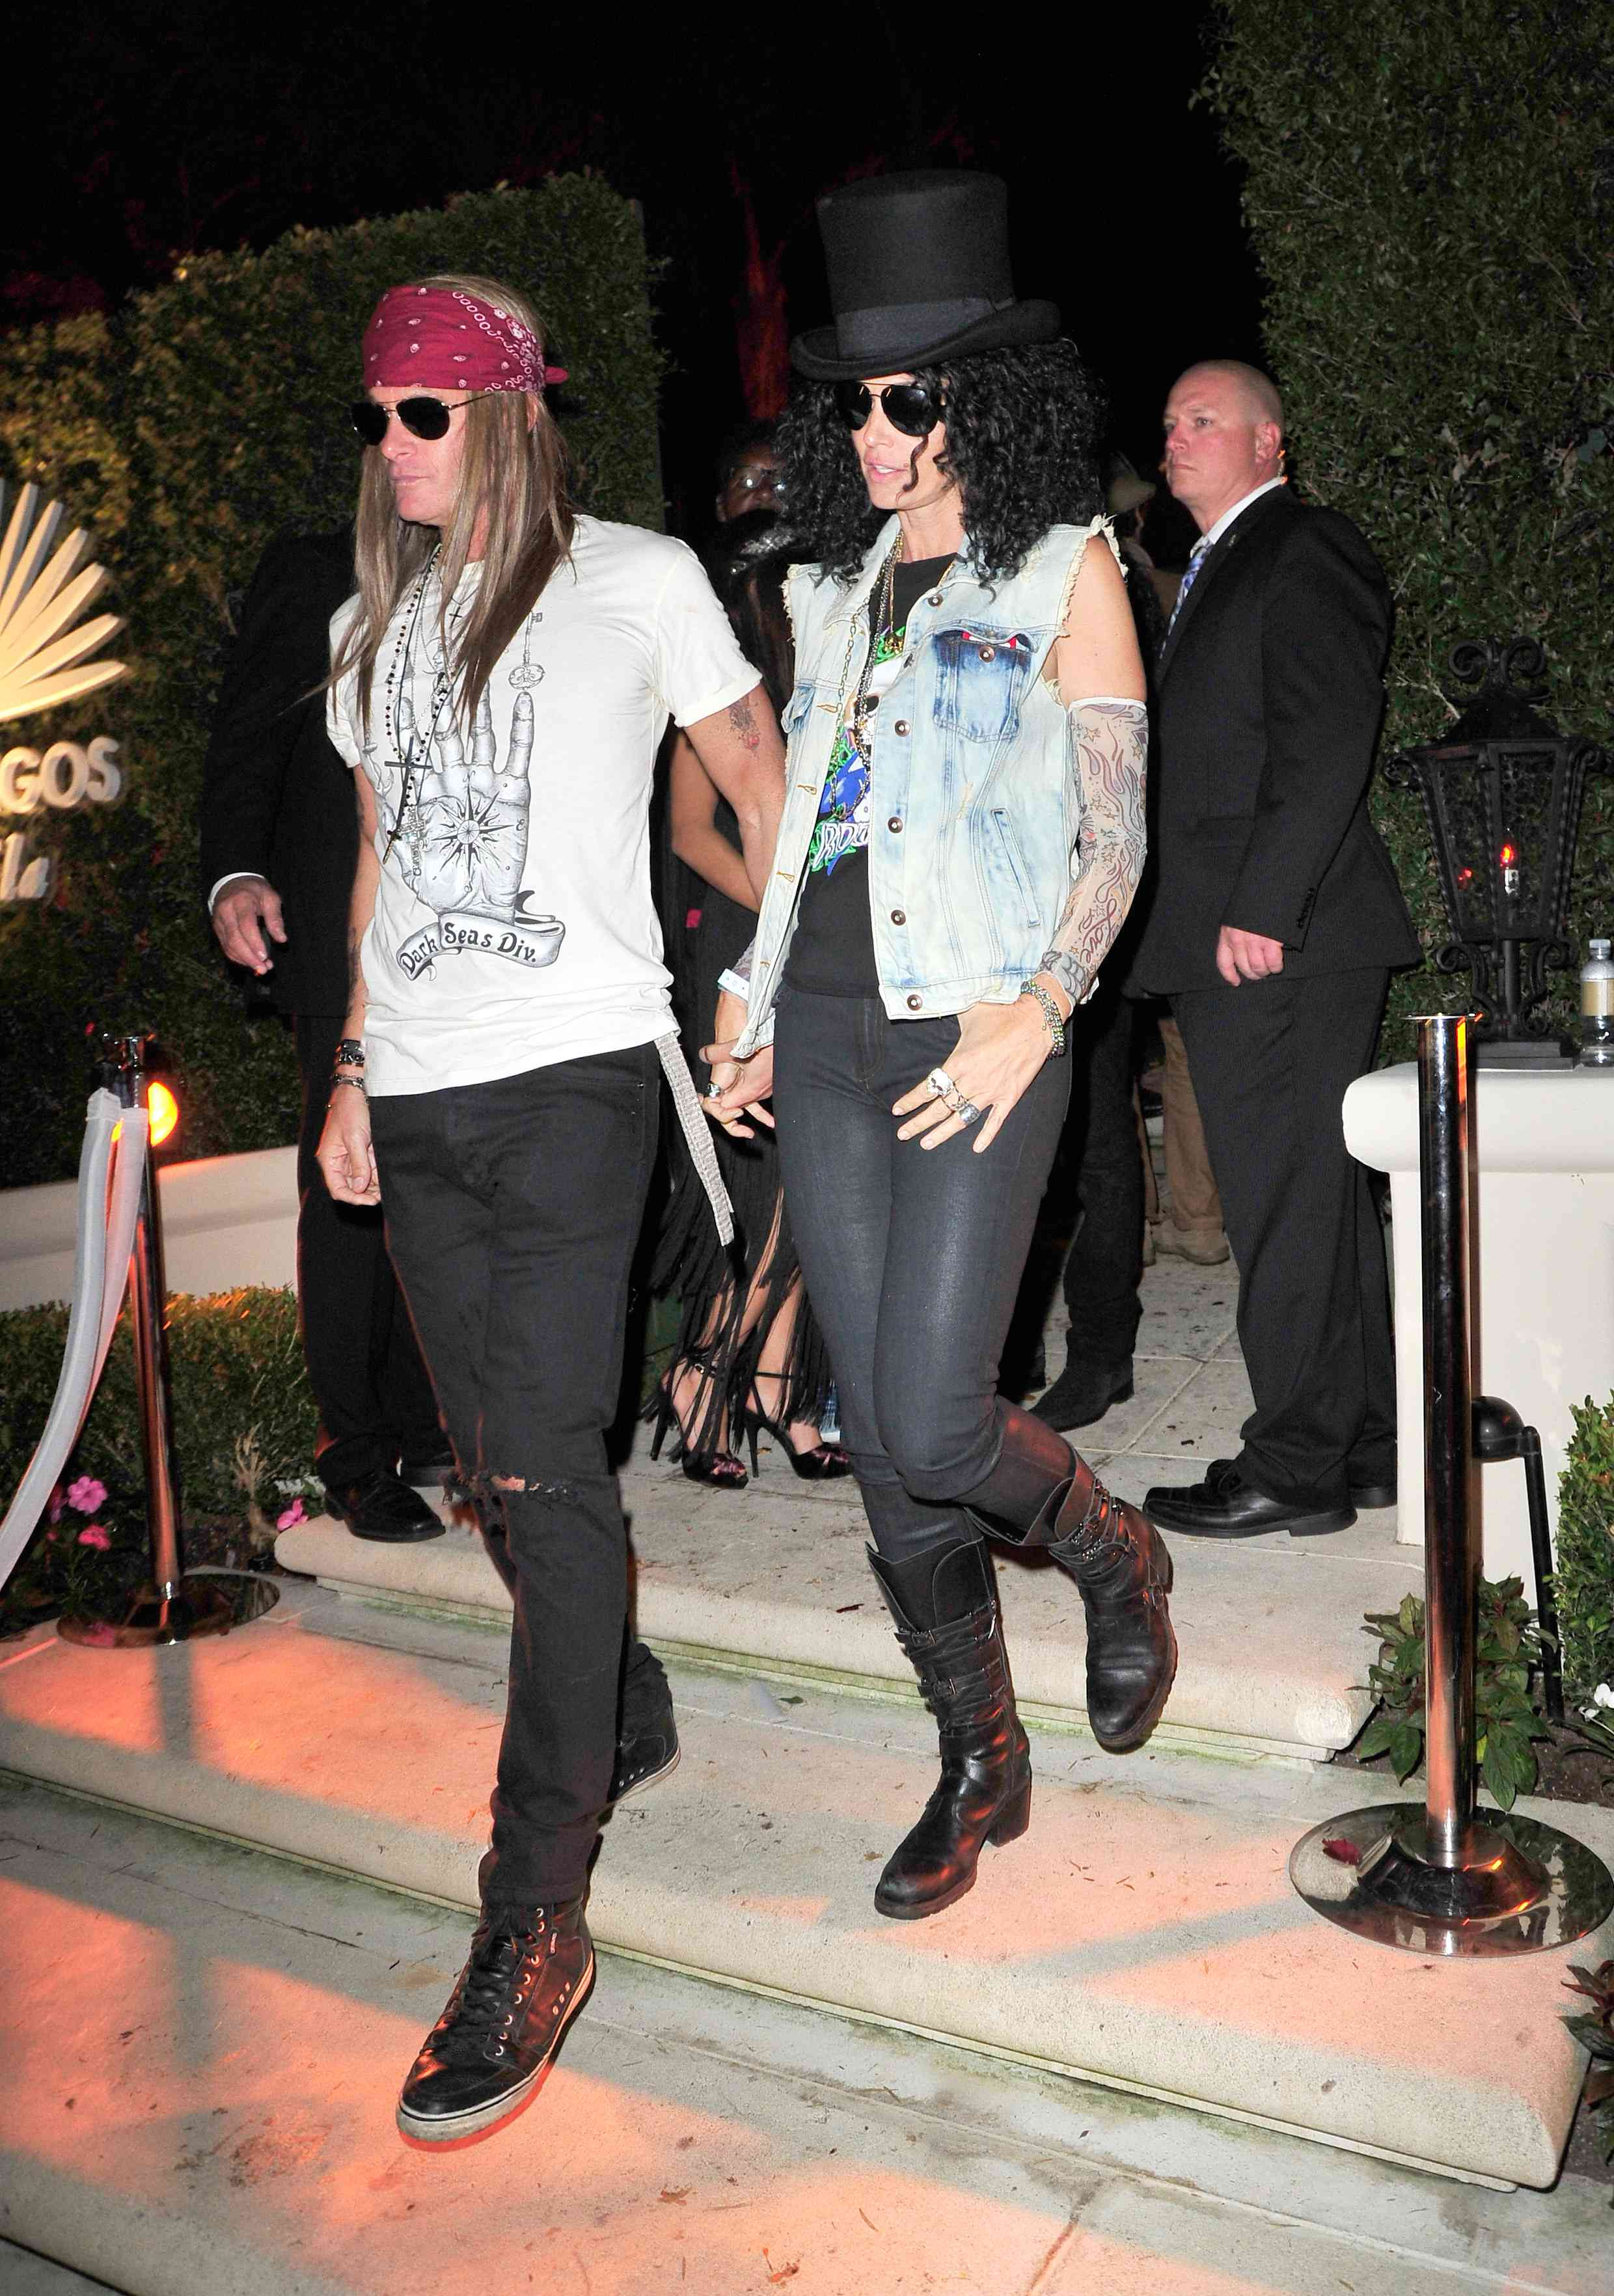 Rande Gerber and Cindy Crawford hold hands while dressed up as Axl Rose and Slash